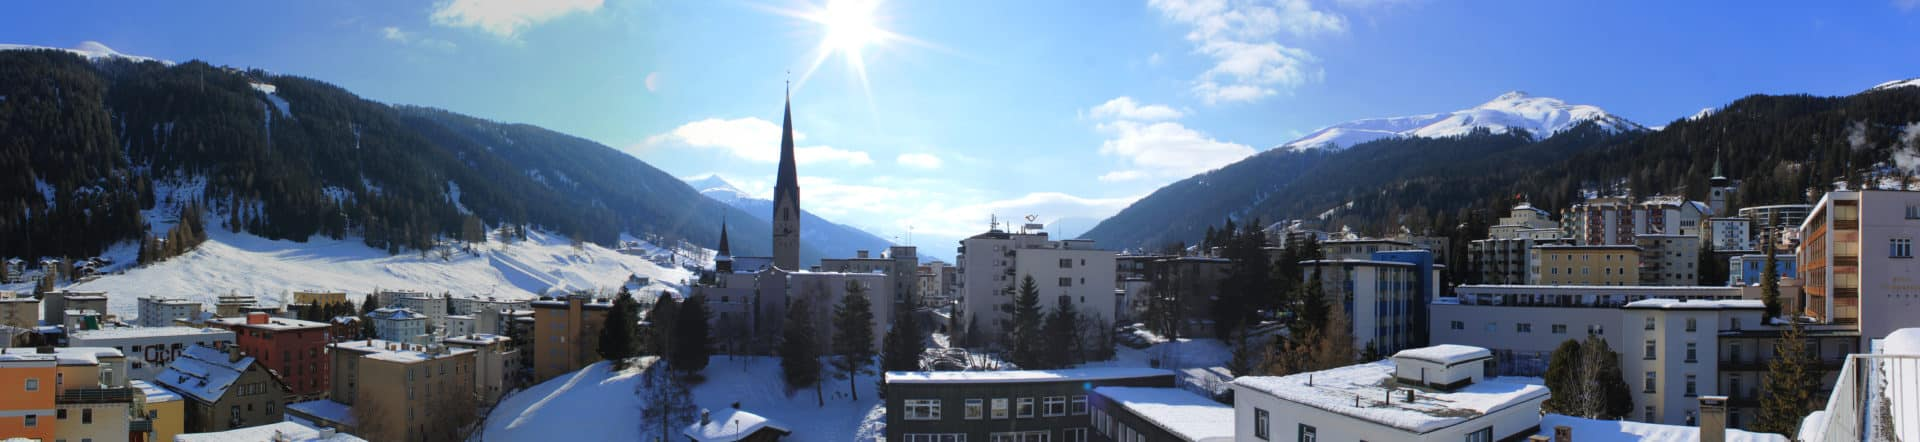 Klosters/Davos, Advanced, 7 Day Off Piste Skiing